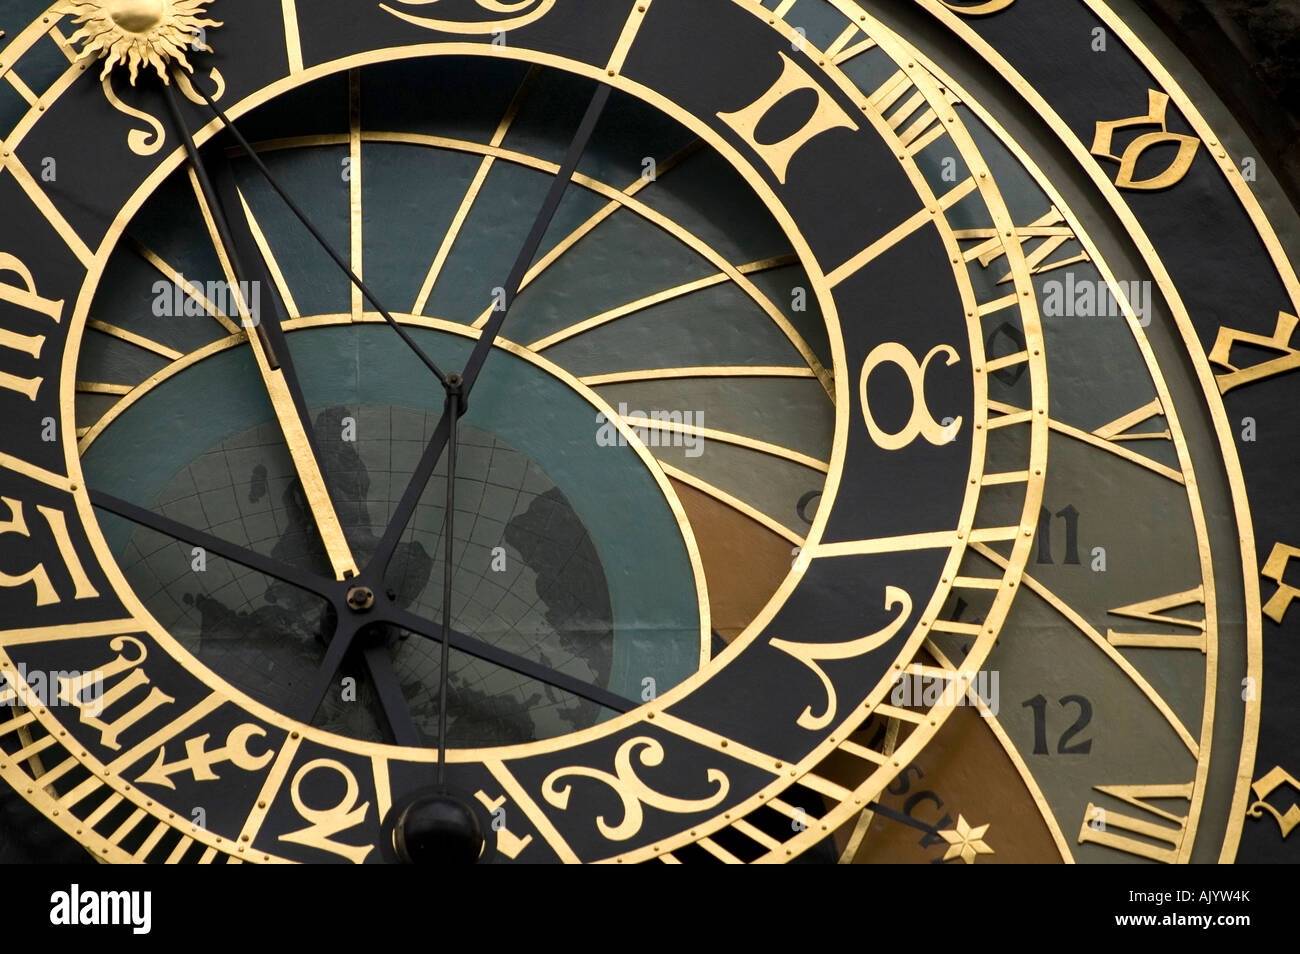 Astrological clock in Prague - Stock Image